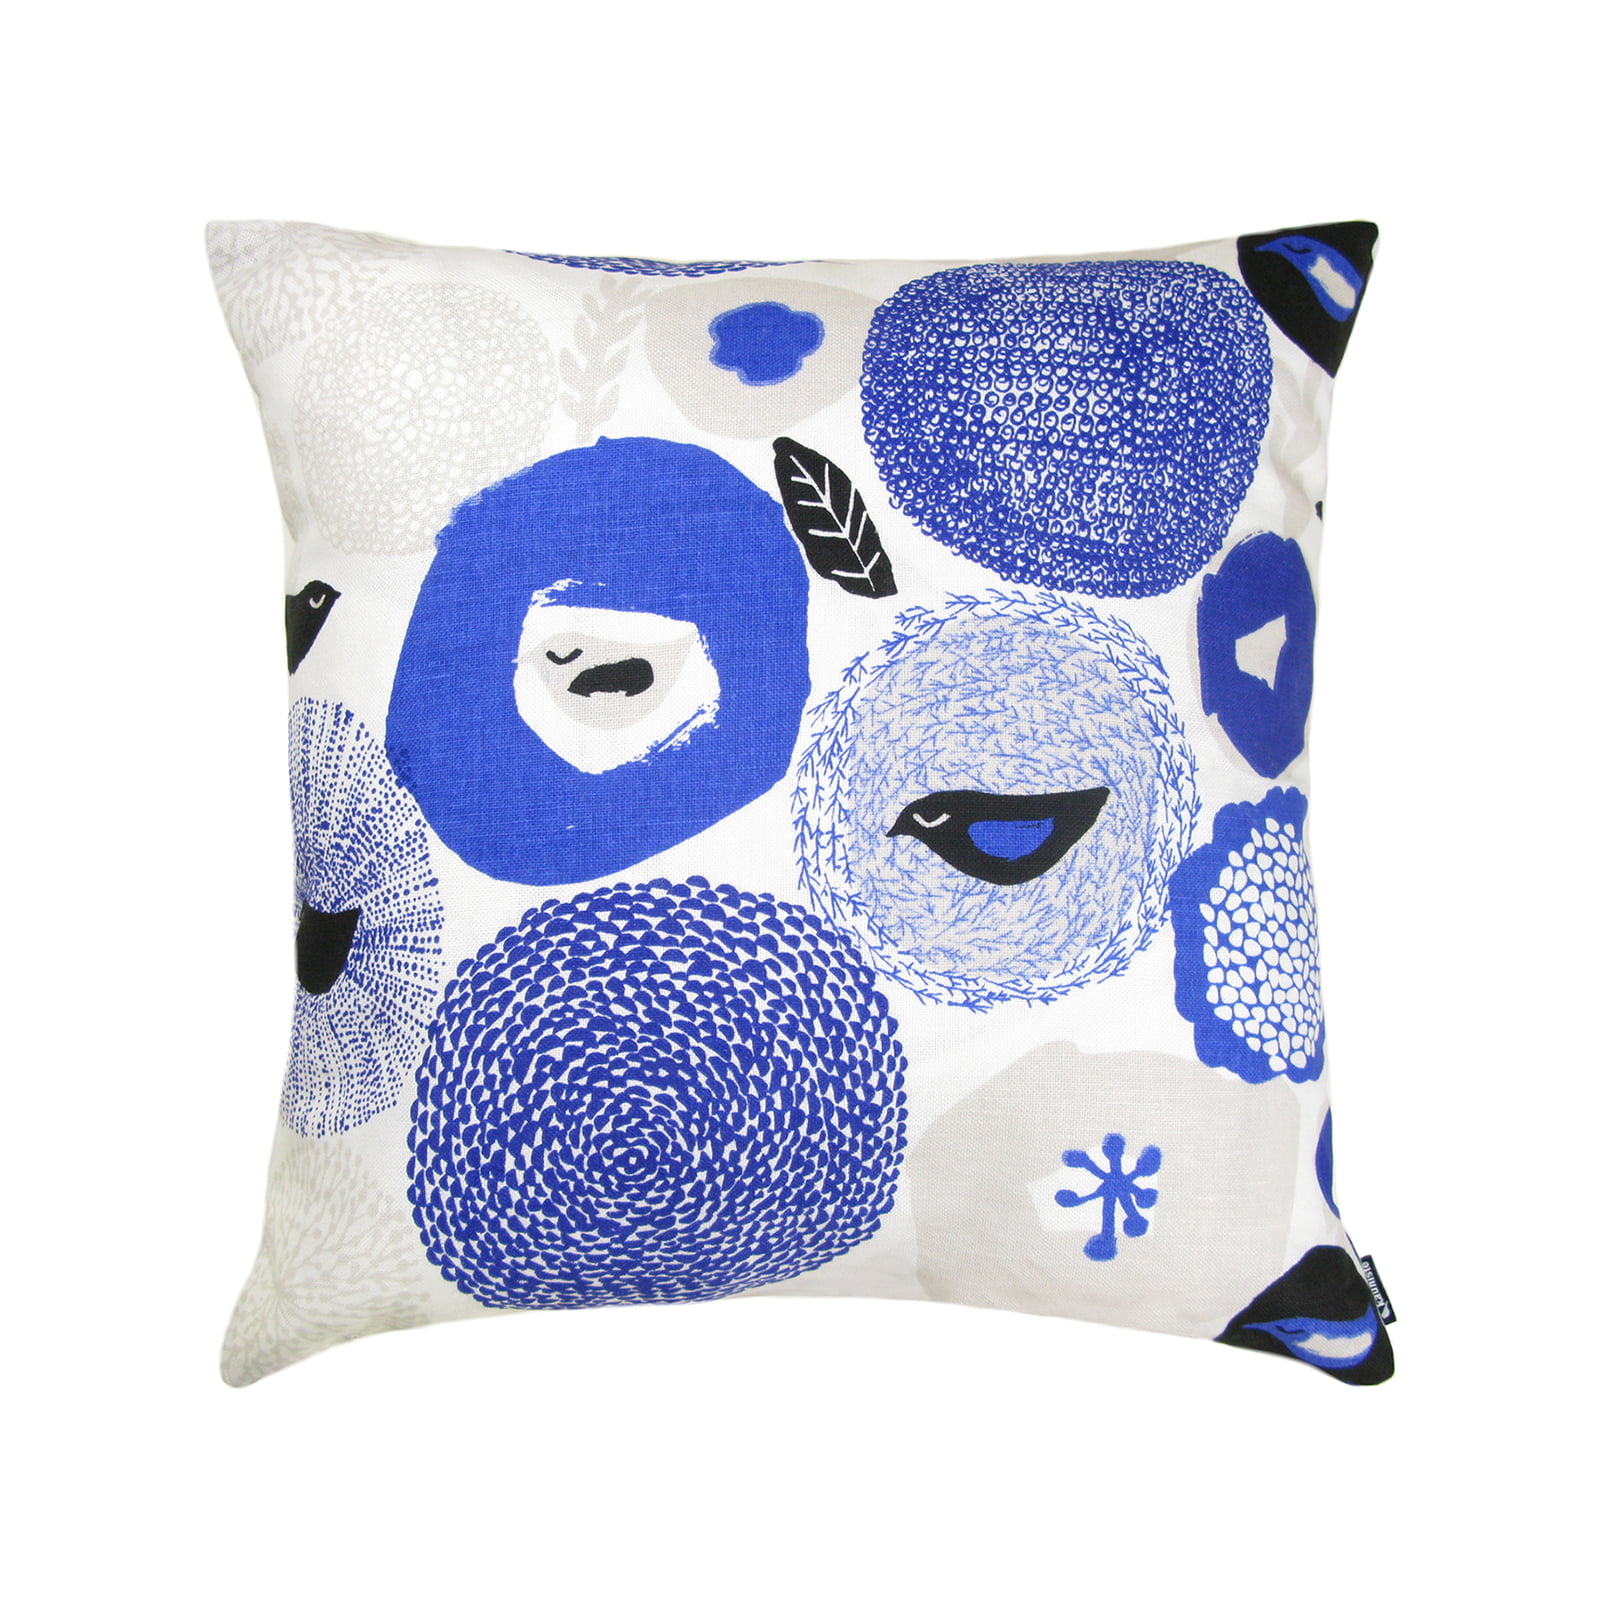 Sunnuntai blue Cushion cover